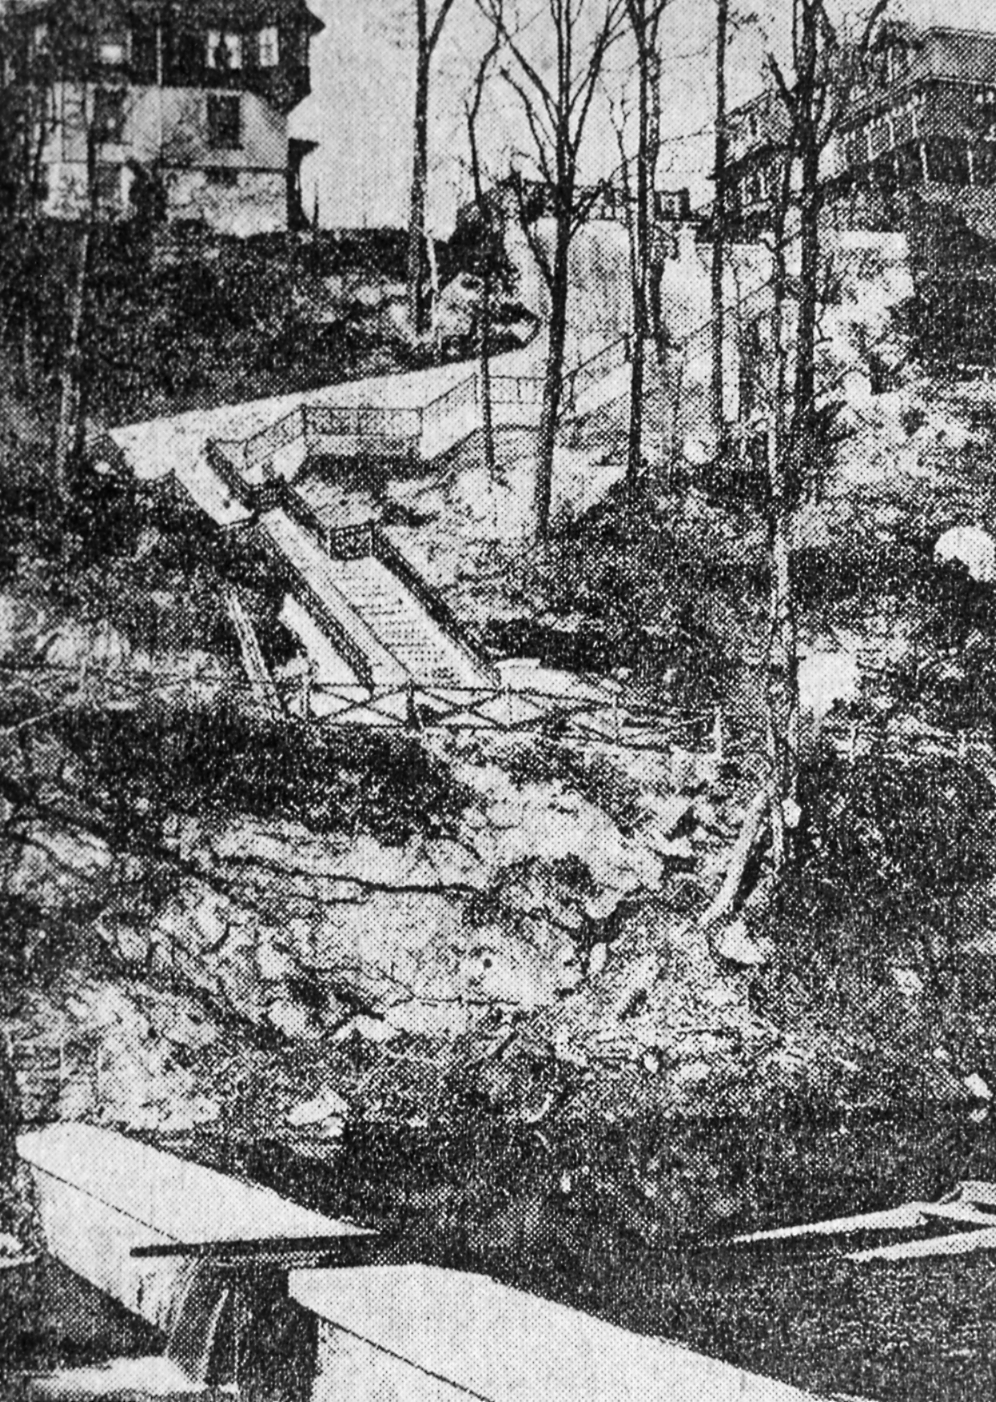 This photo of the Hundred Steps dates from 1901. It shows the dam at the bottom in the Wissahickon Creek, the steep bank, and then the Hundred Steps themselves. The light fixtures have not yet made their appearance. The house on the right at the top of the steps is still there today; however, the mansion on the left is long gone. It's been replaced by a house built in 1966.